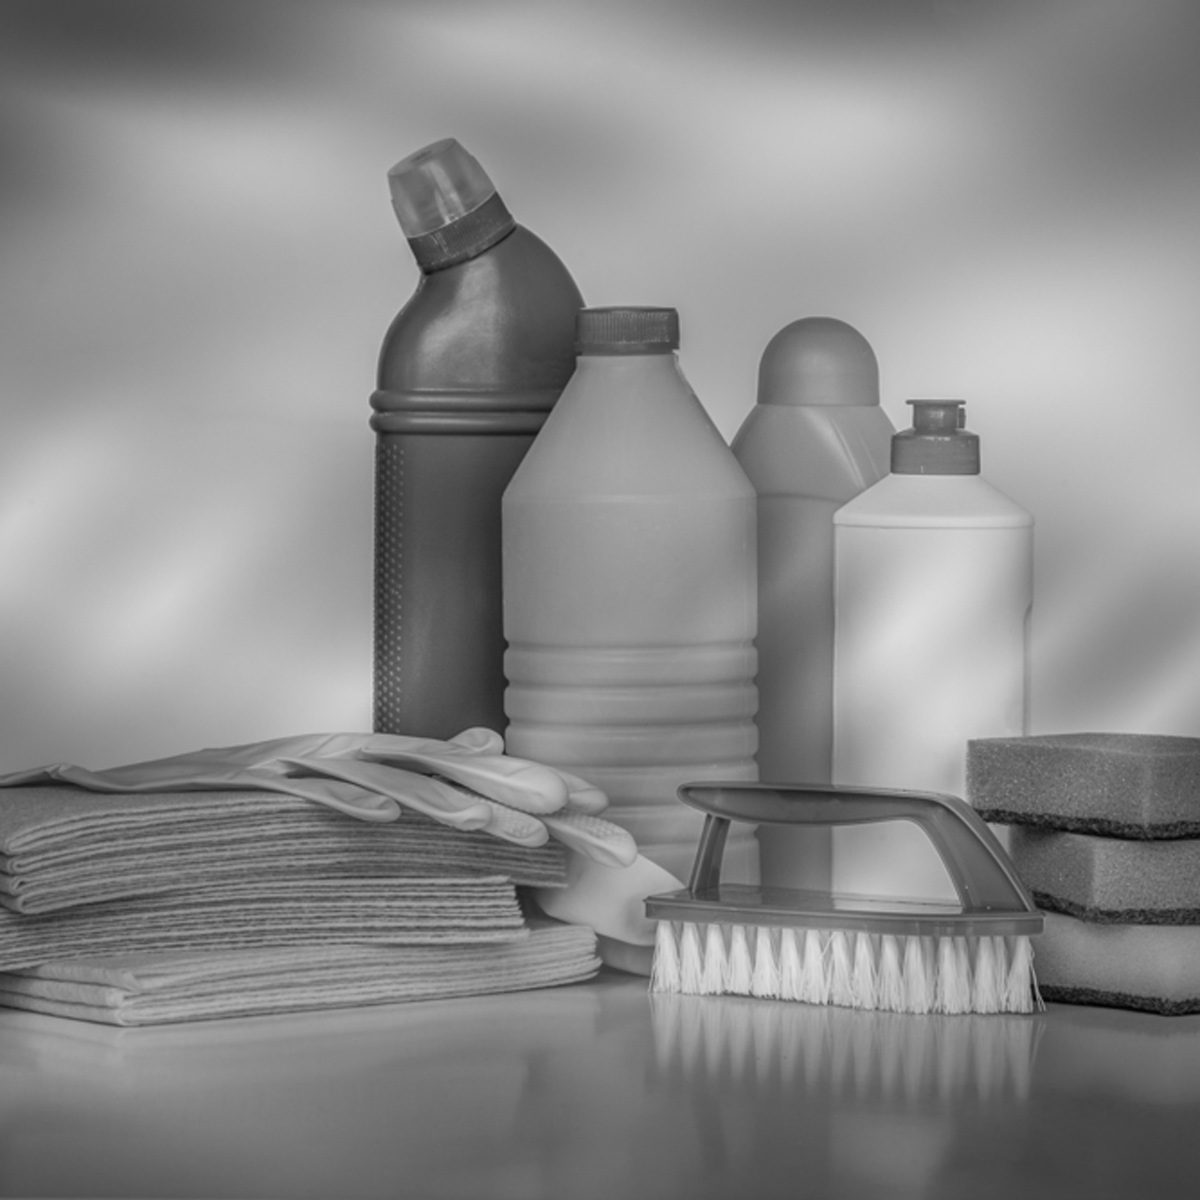 20 Common Household Cleaning Products You Should Never Mix